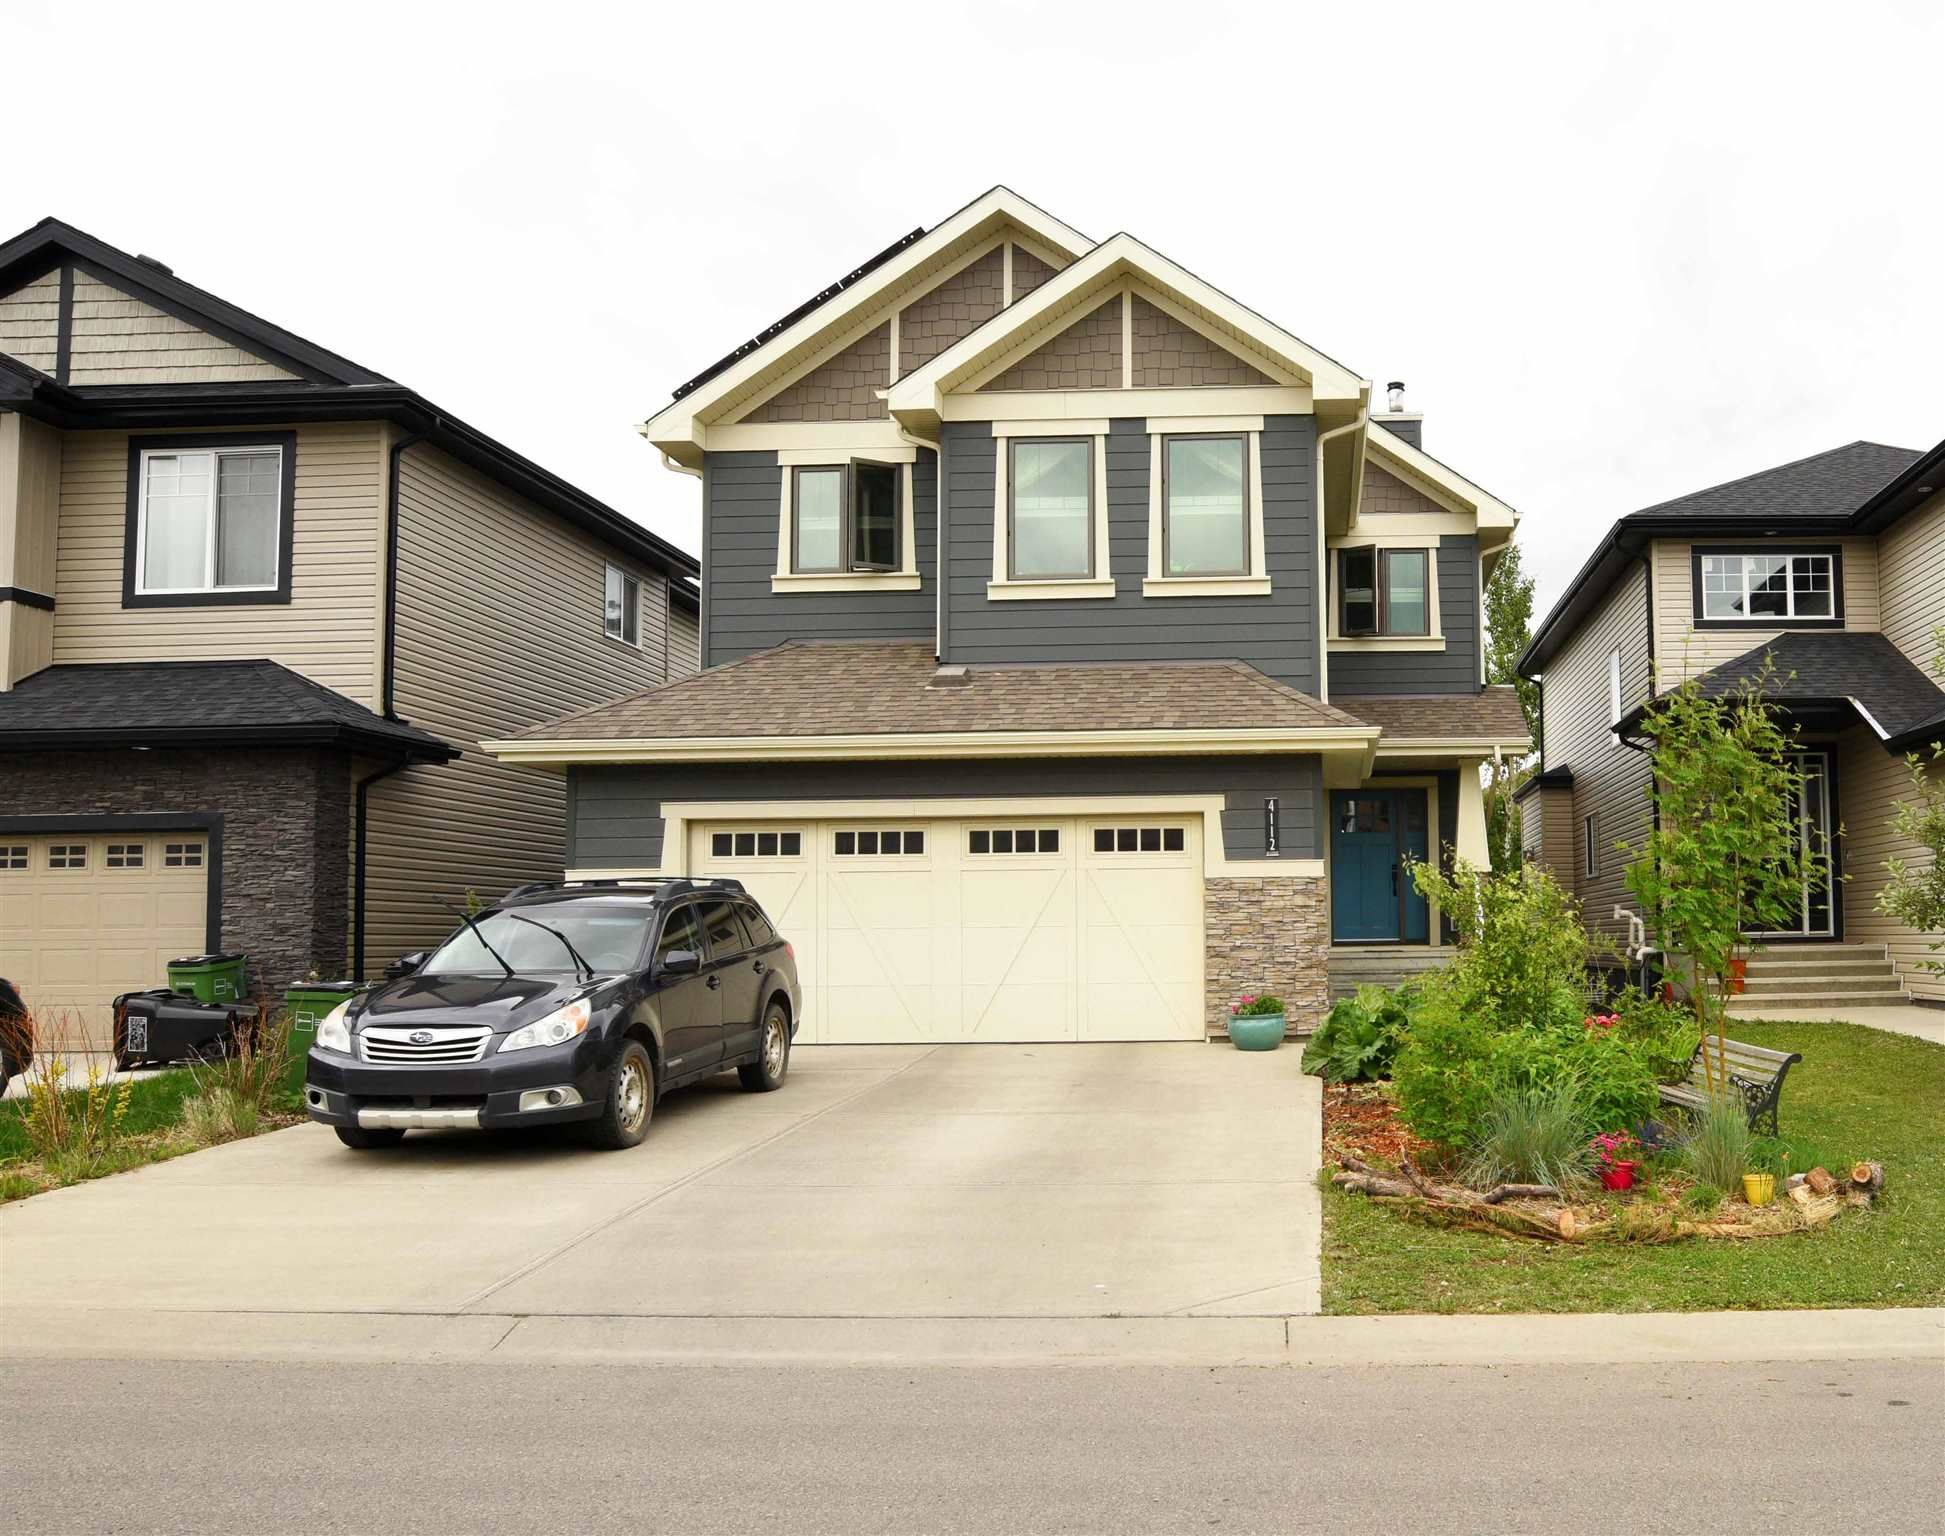 Main Photo: 4112 CHARLES Link in Edmonton: Zone 55 House for sale : MLS®# E4254618